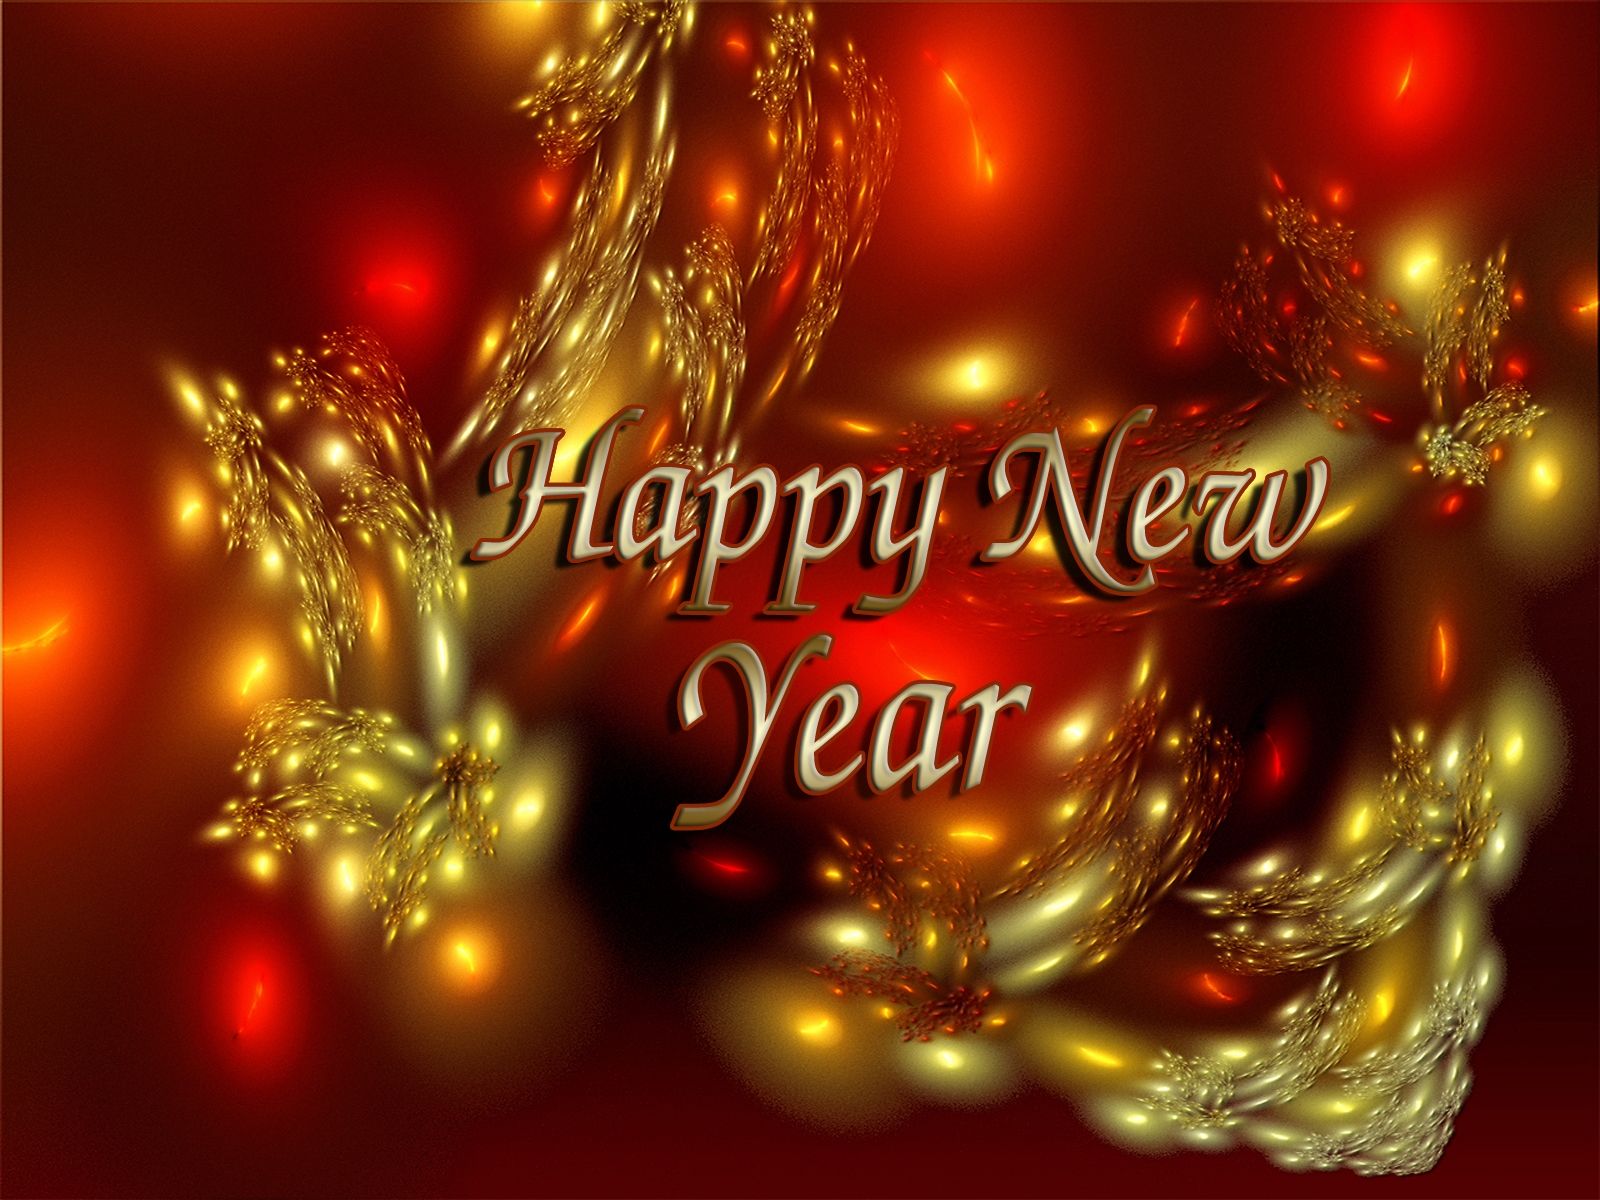 happy new year wallpapers is a great thing to in new year wallpapers . 1600 x 1200.Happy Christmas And New Year In Polish